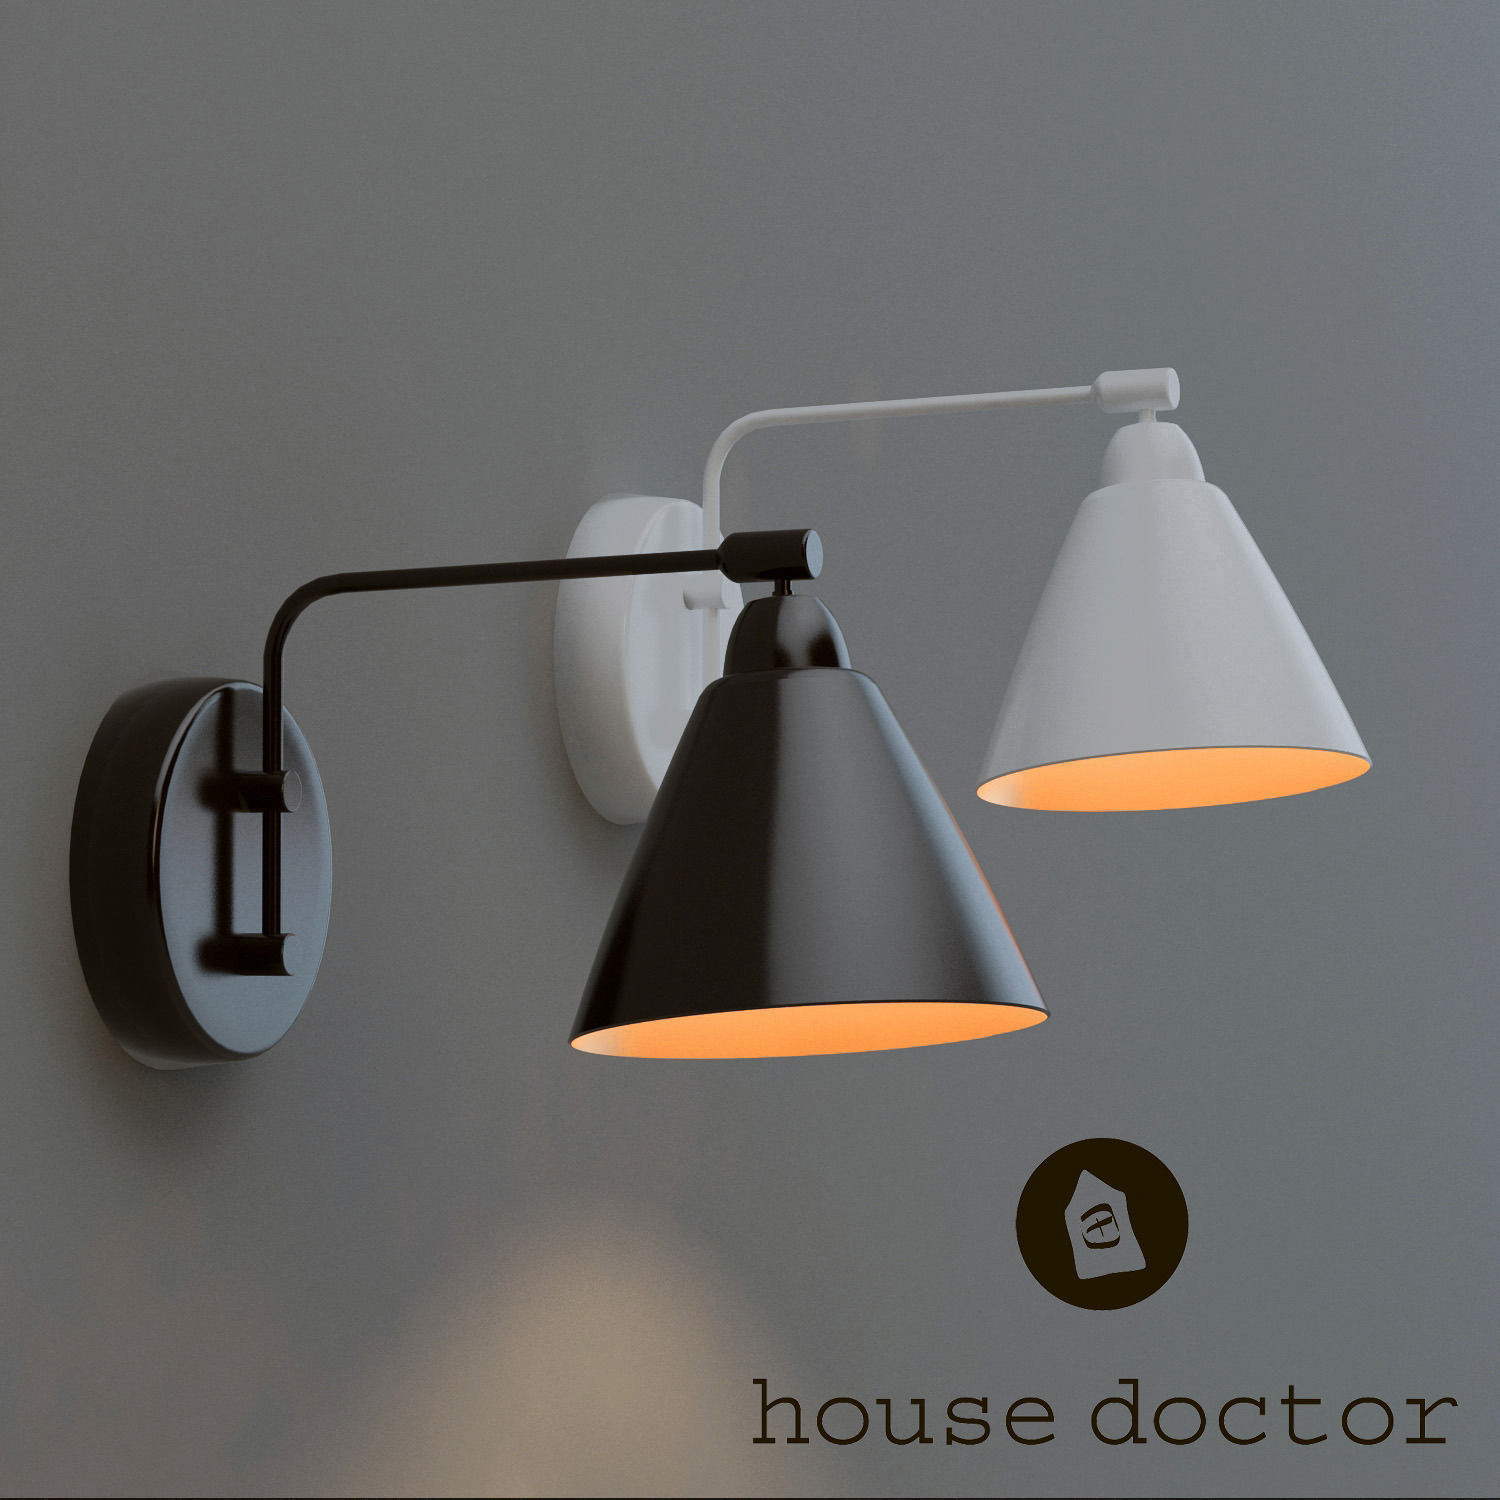 lamp house doctor 3d model max. Black Bedroom Furniture Sets. Home Design Ideas